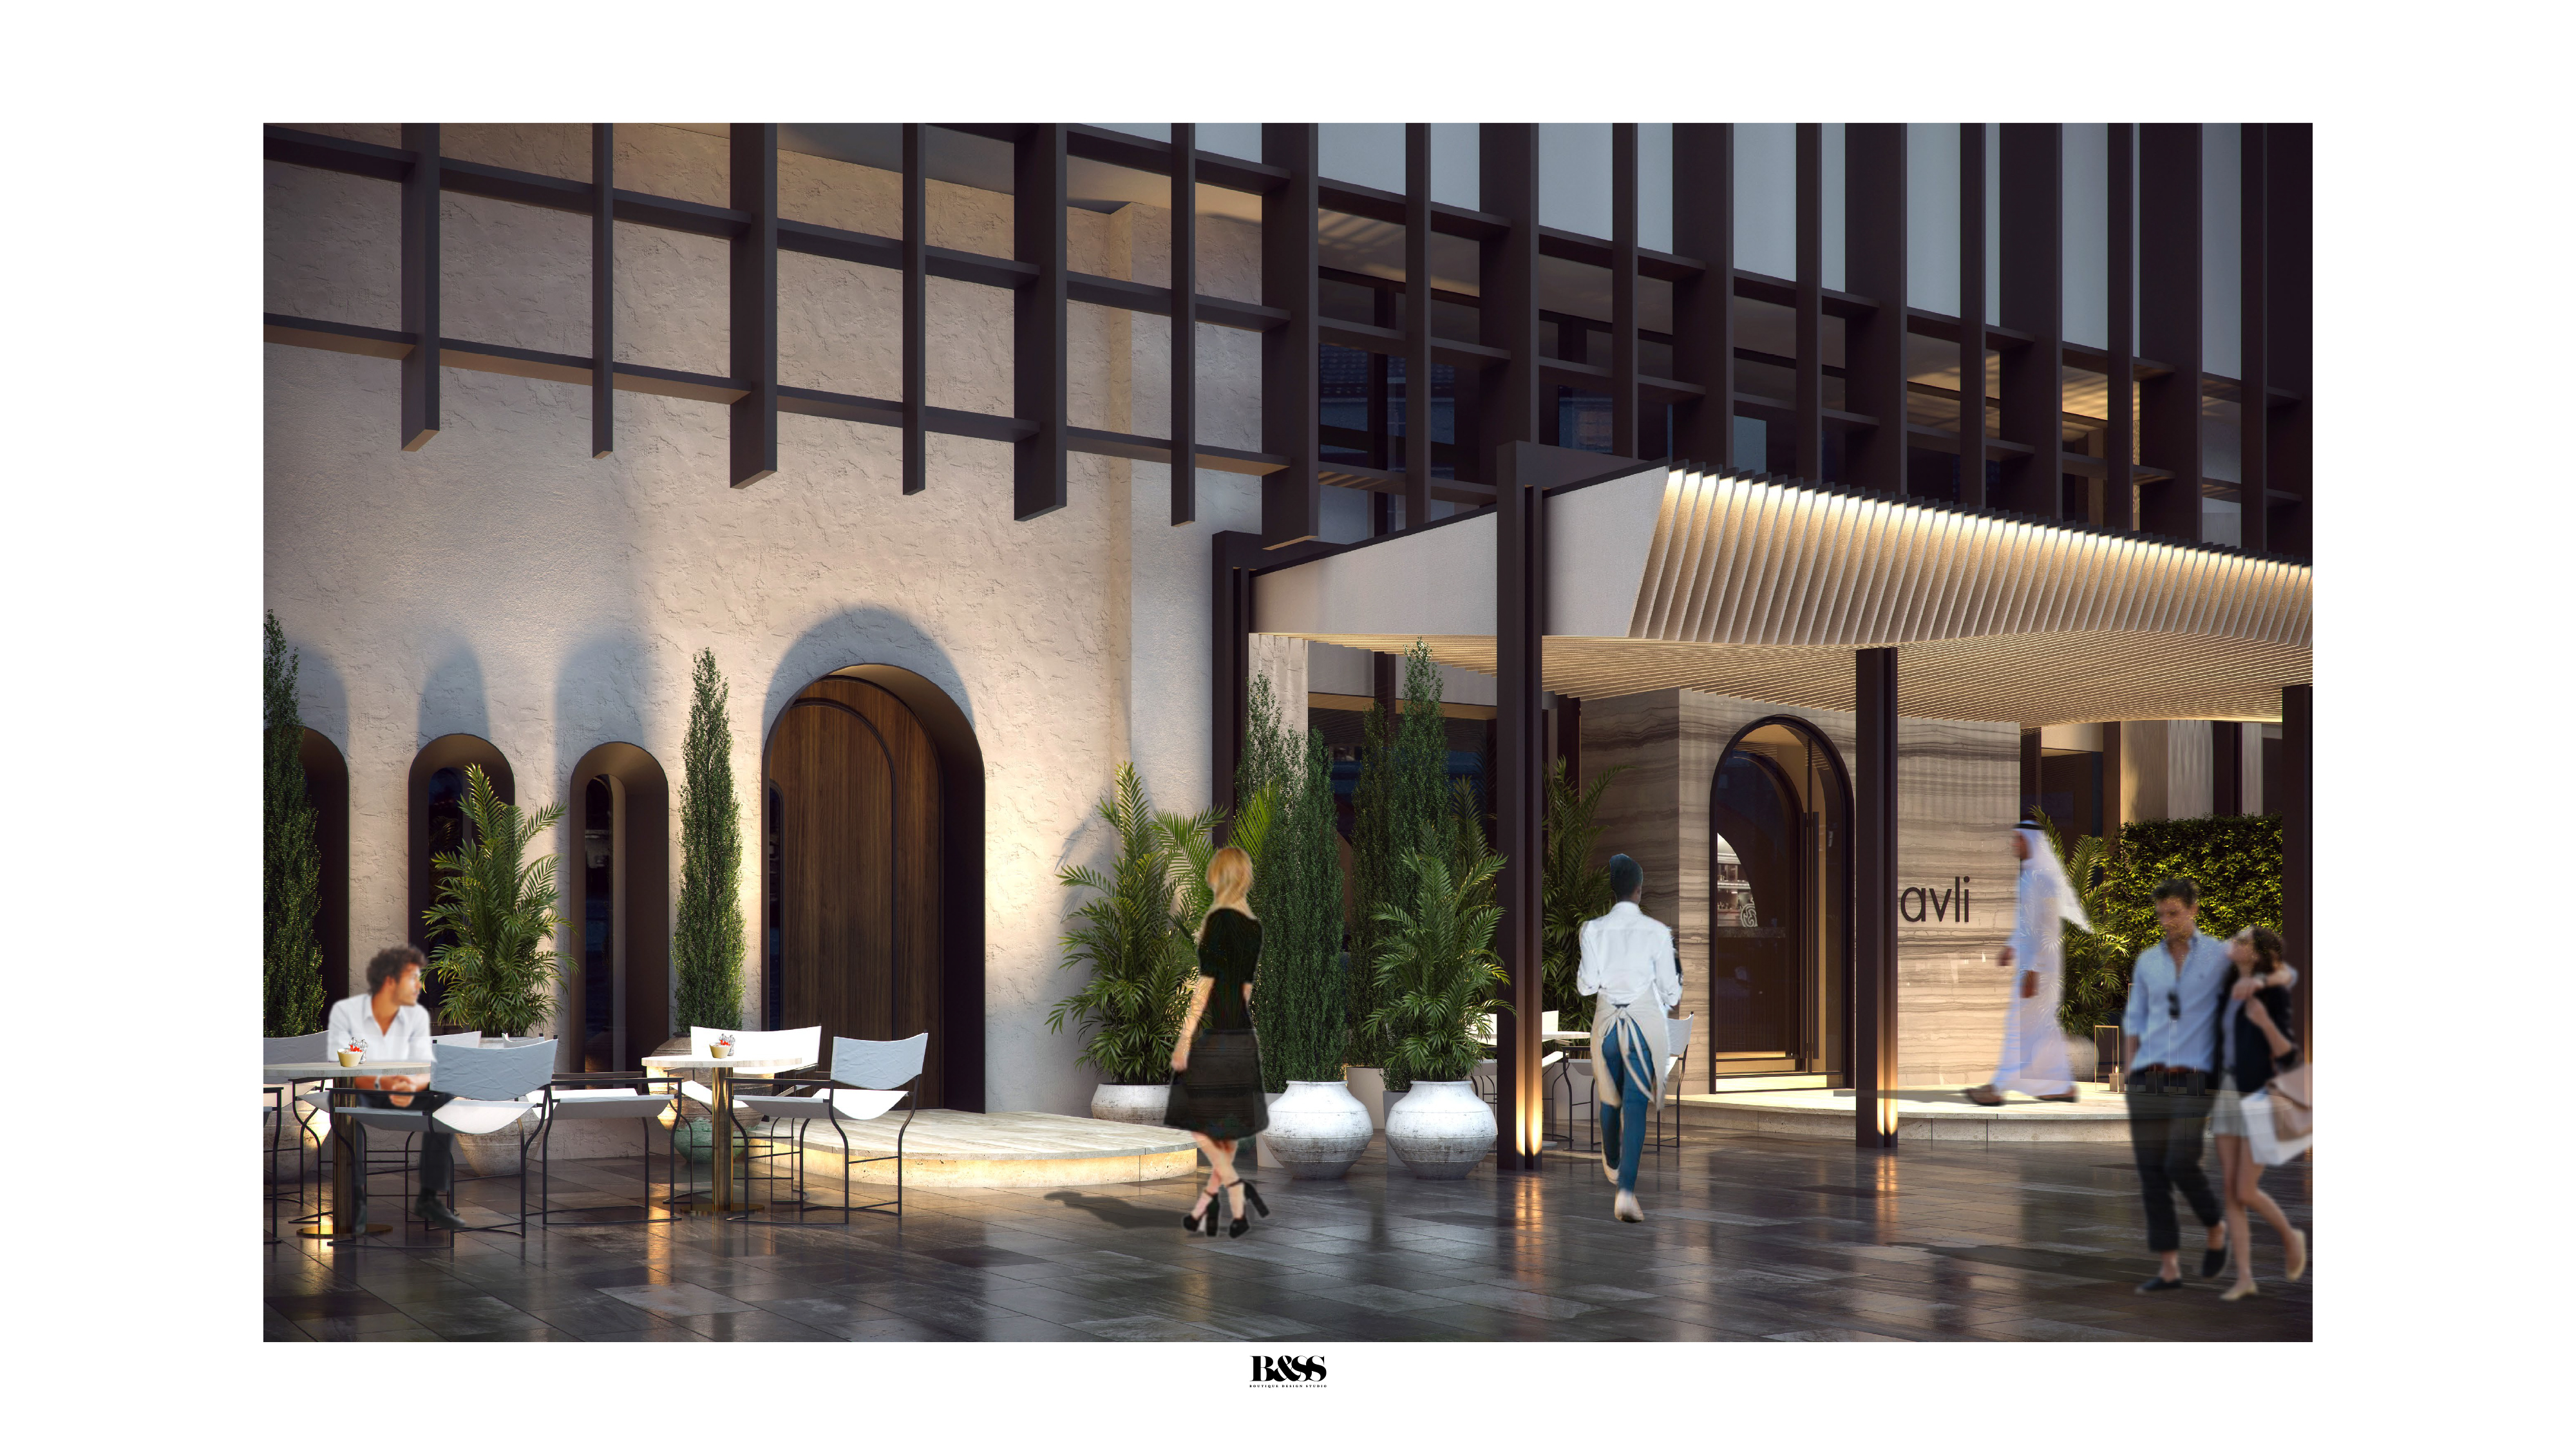 Avli By Tashas Set For A January 2019 Opening In Difc Retail News Latest Retailing Retail Industry Business Information And Future Of Retail Business In Middle East Images Retailme